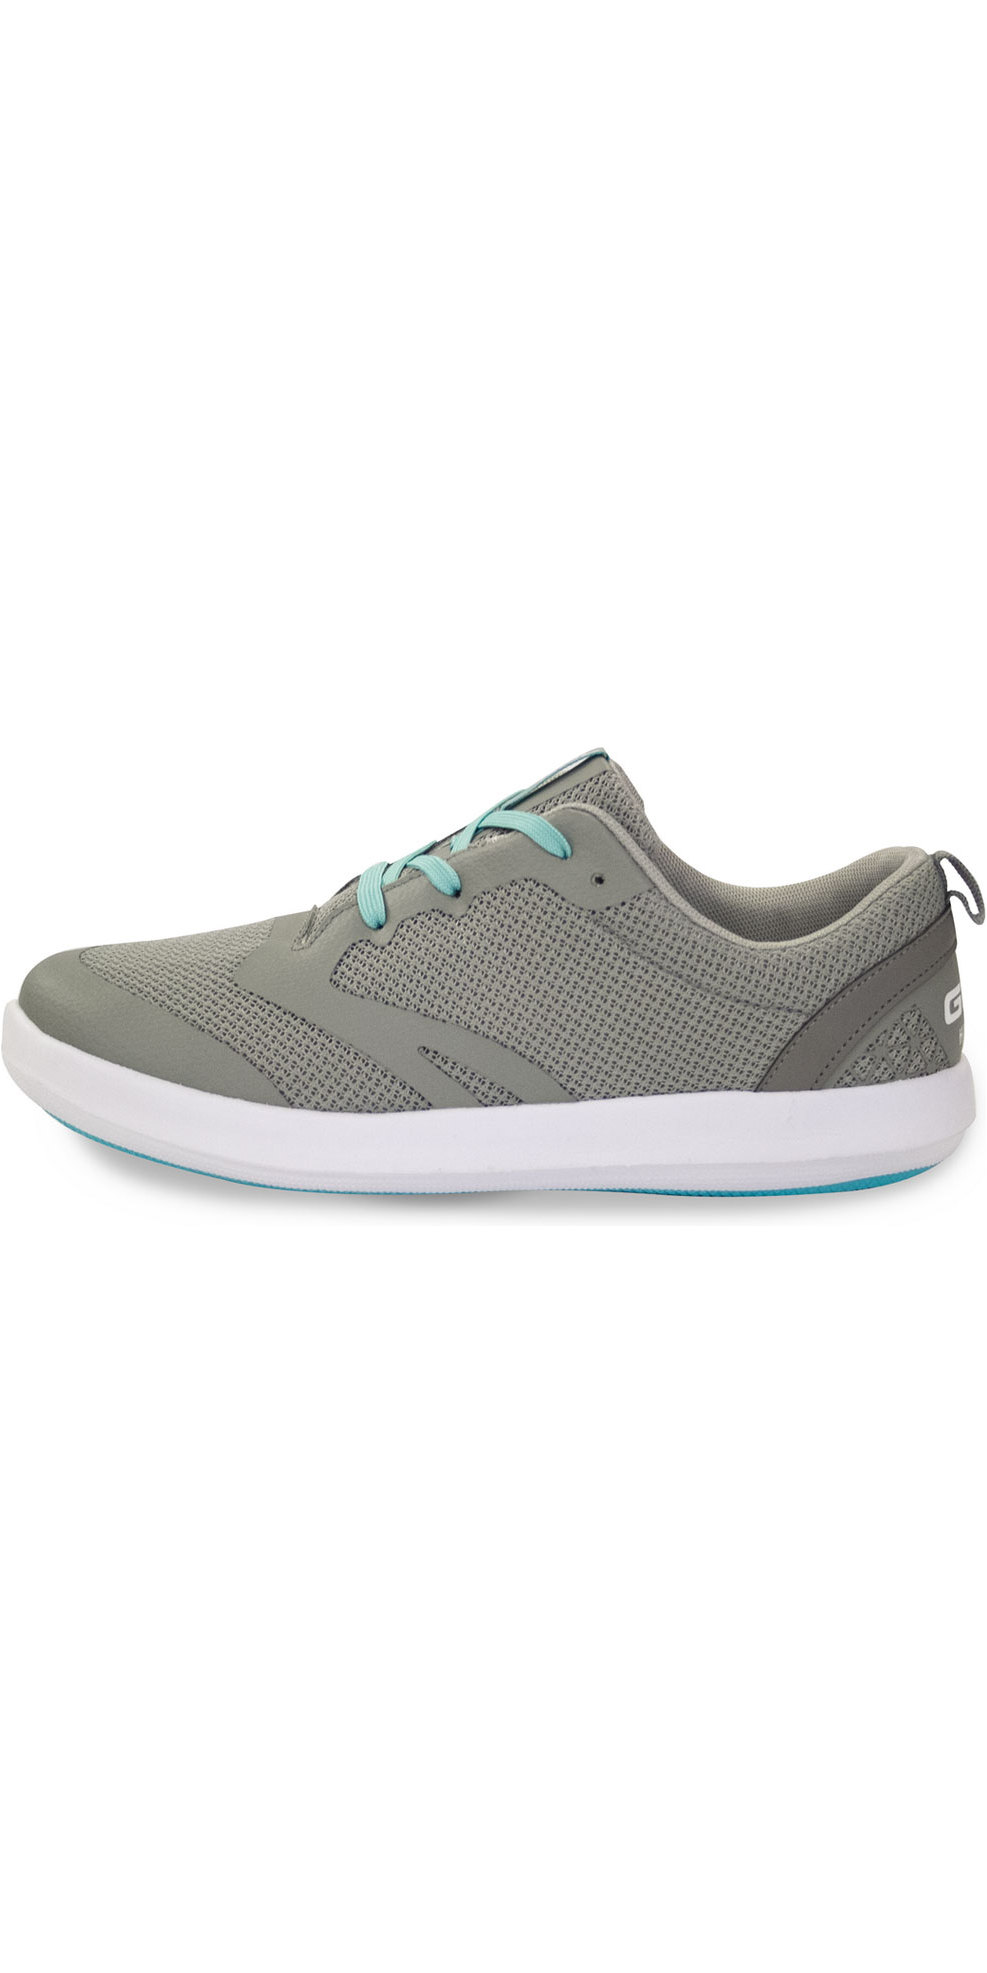 2019 Gul Aqua Grip SUP Shoe Grey DS1004-B3